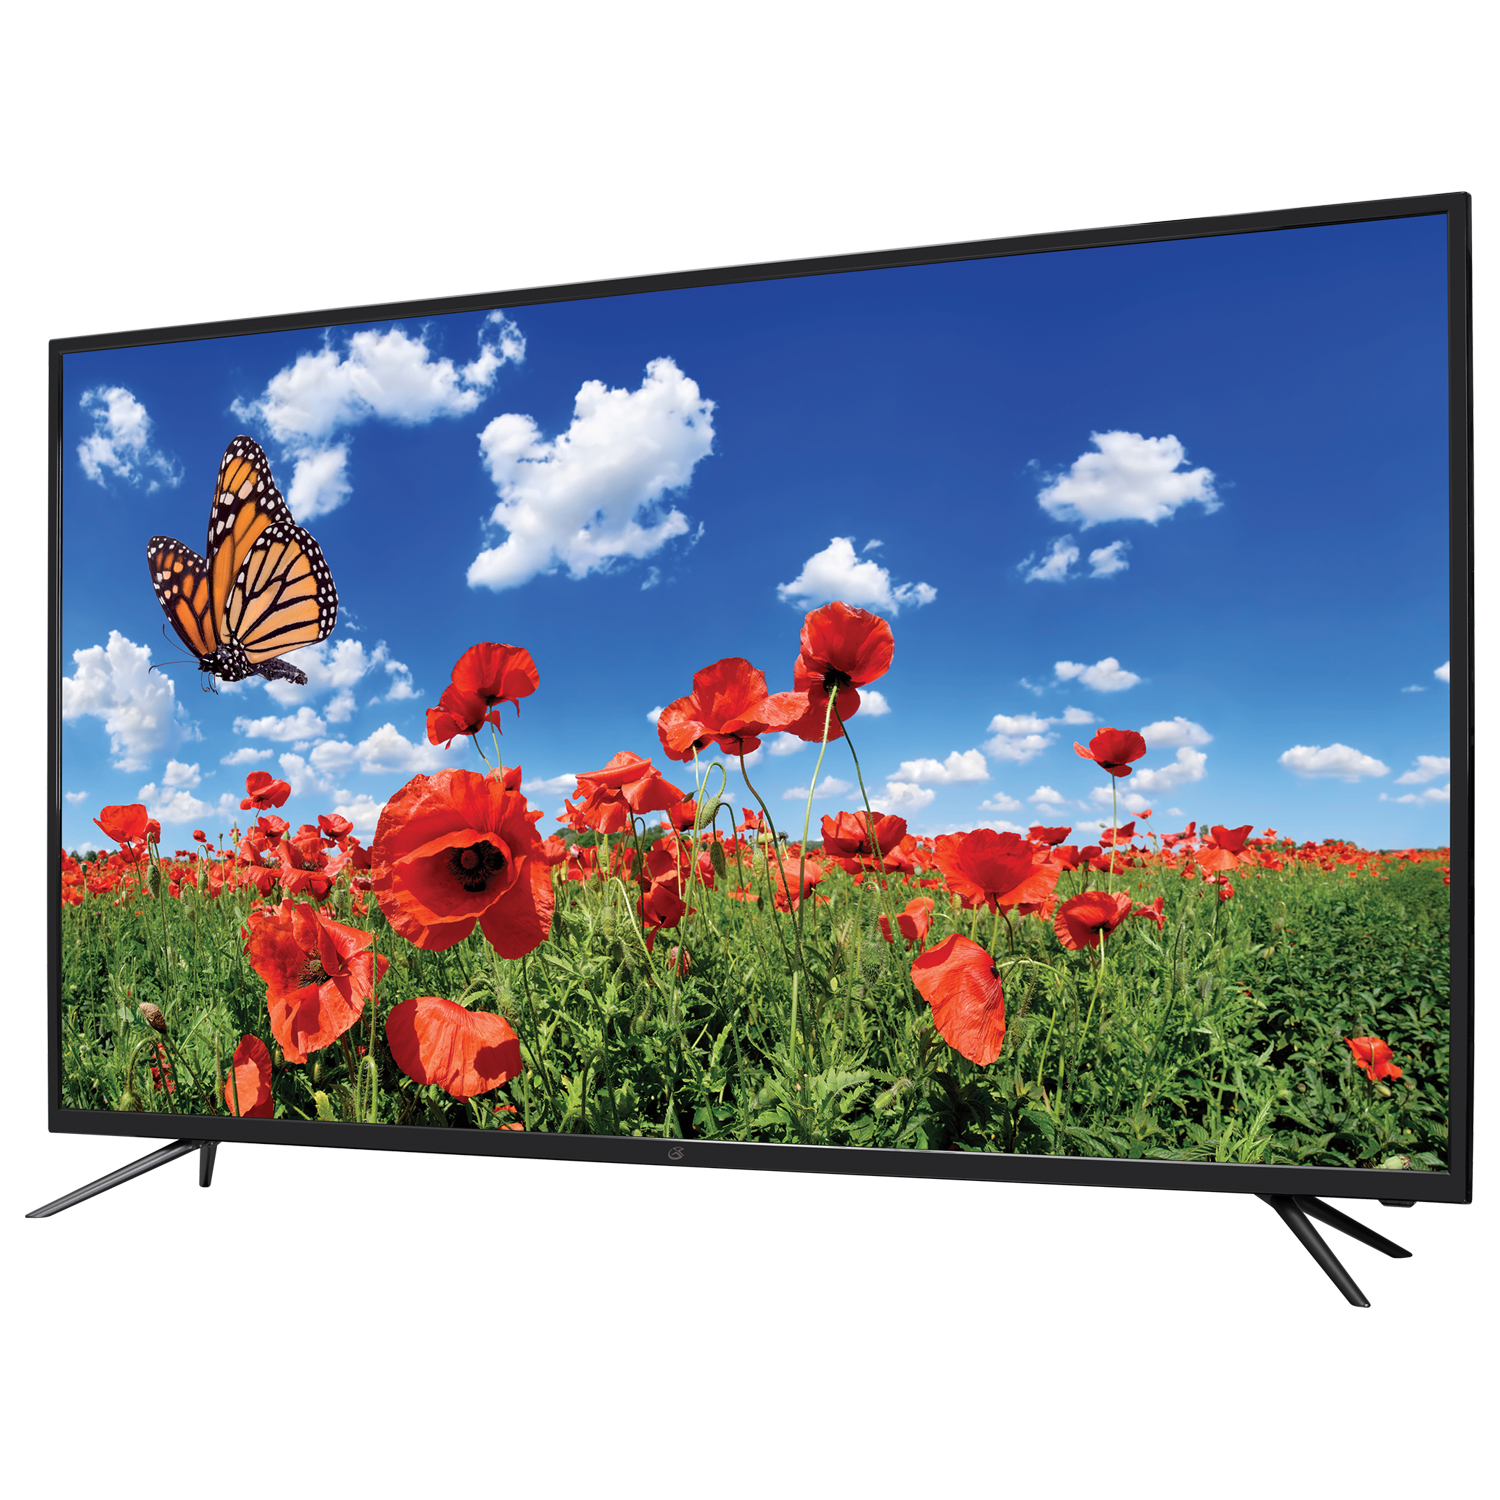 "GPX 55"" 4K Ultra HD DLED TV with Built-In DVD Player and HDMI Cable by GPX"